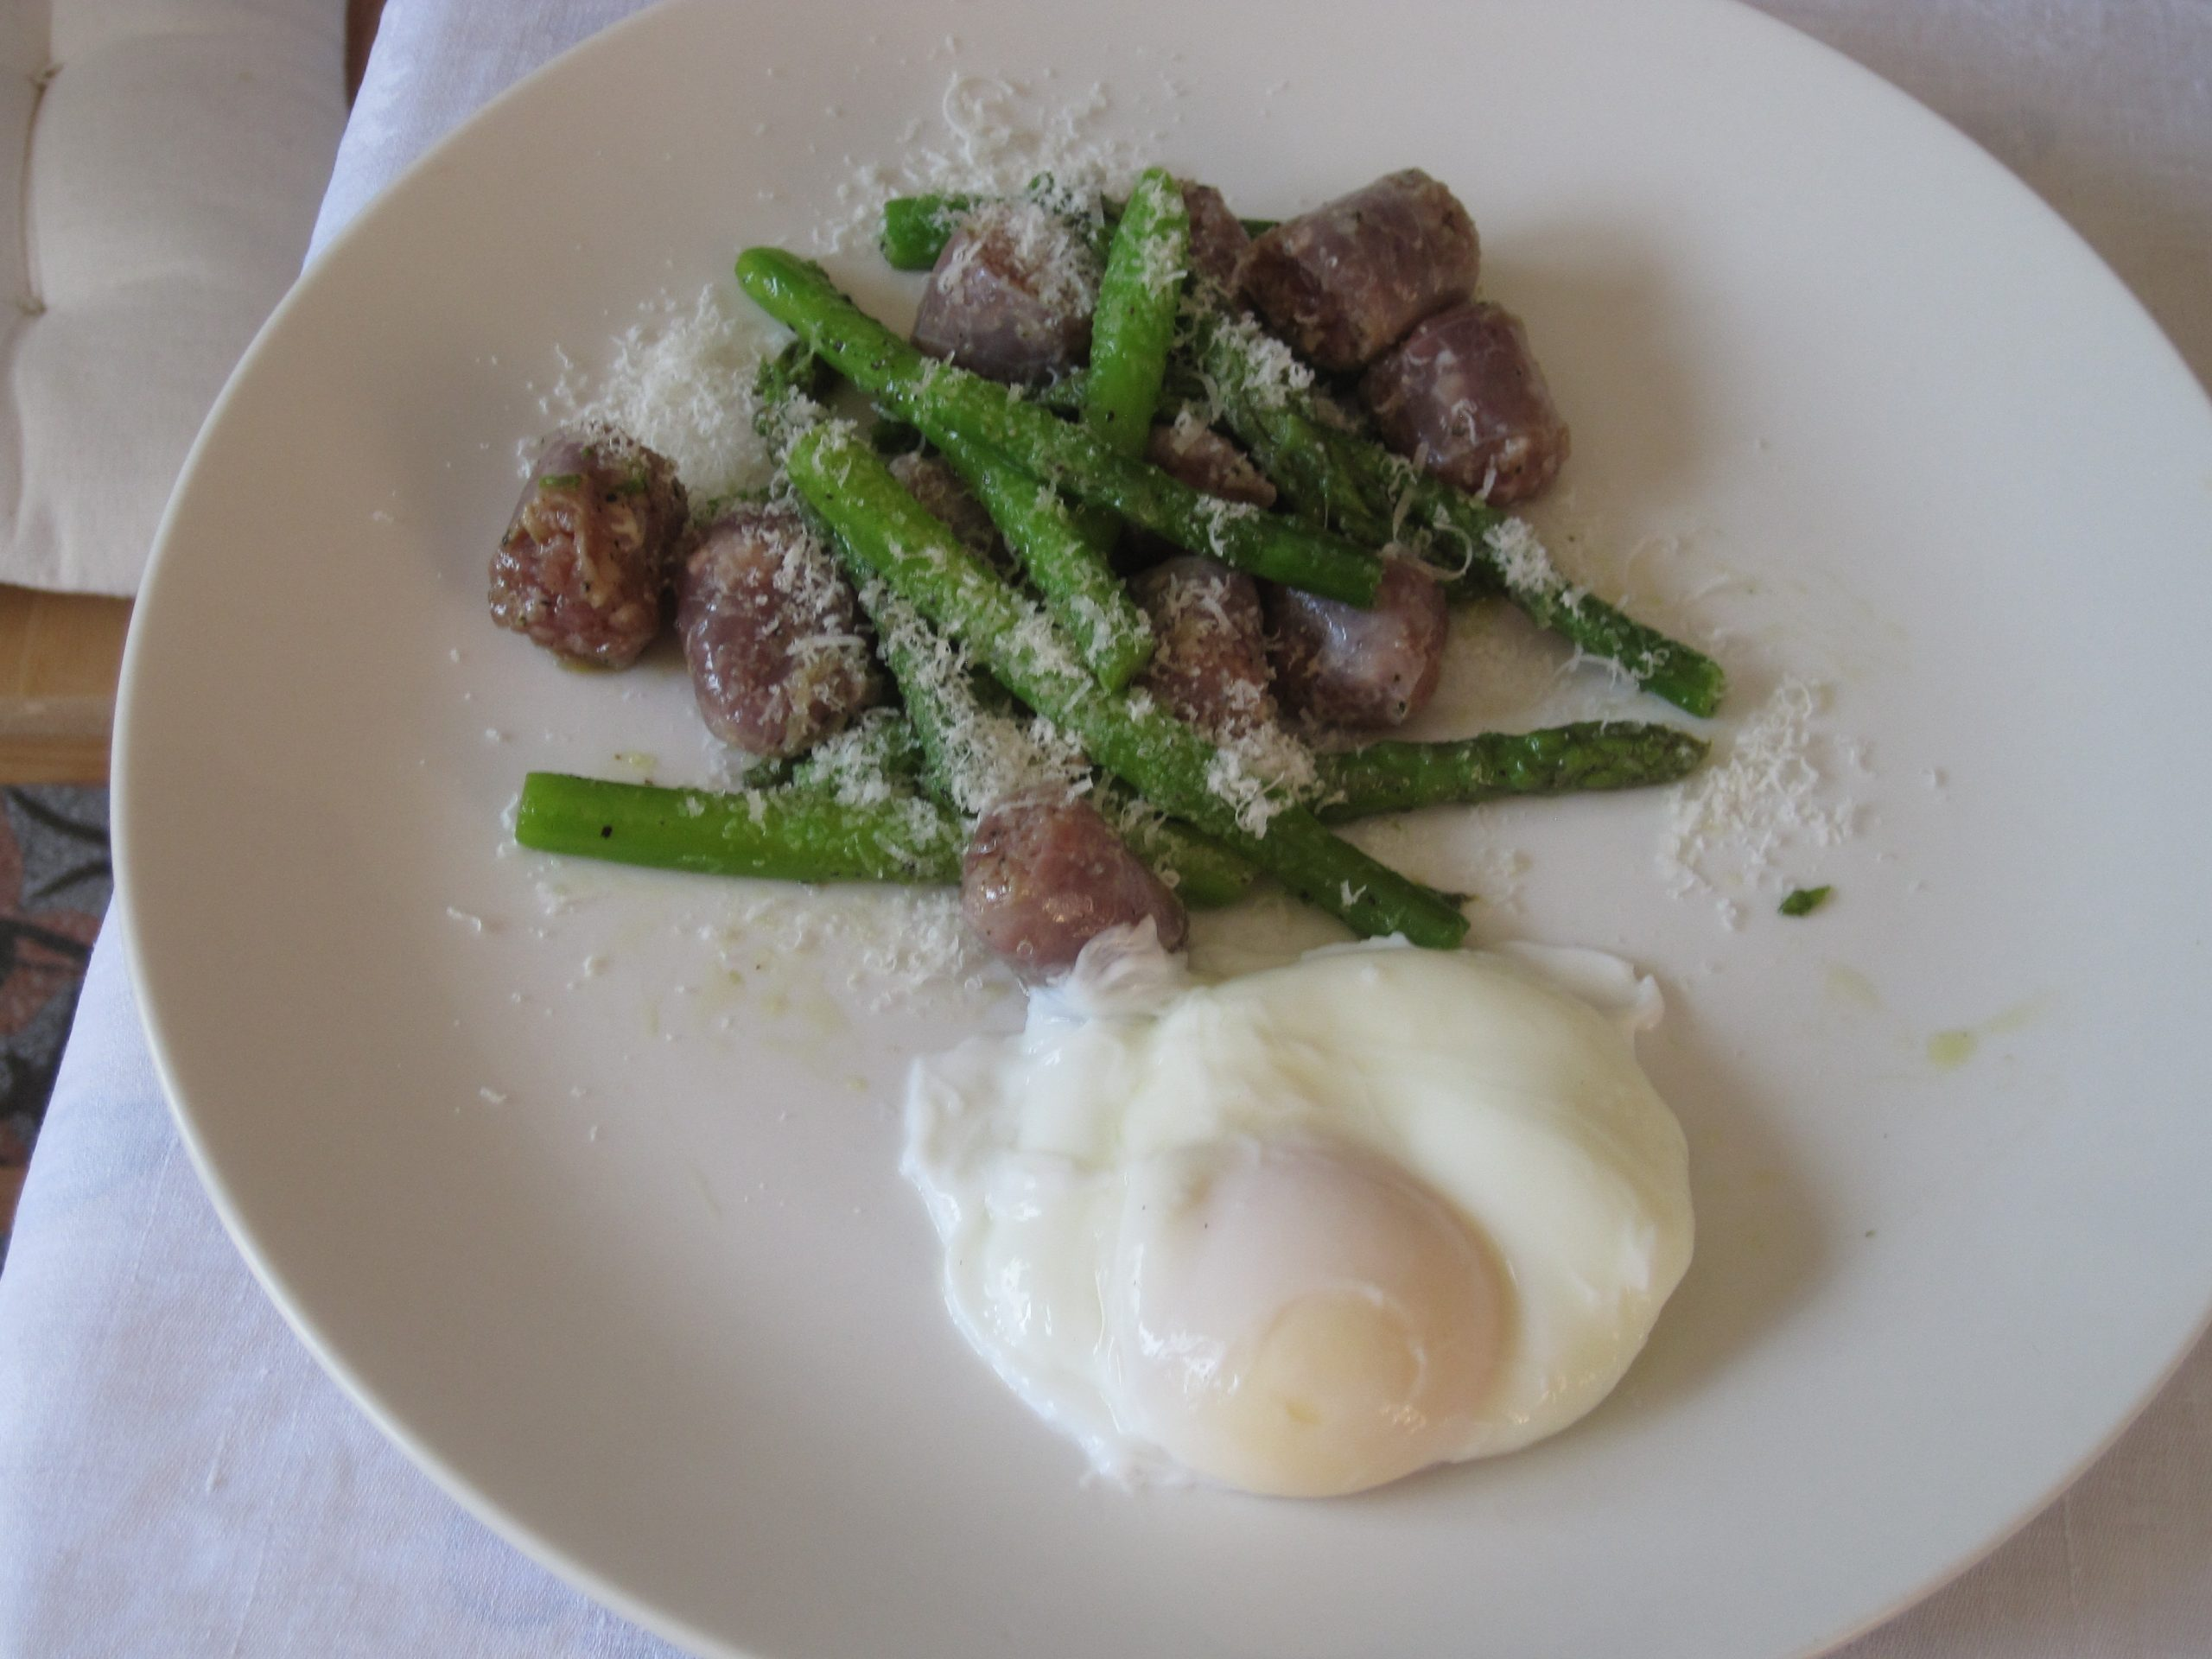 Asparagus and Sausage Recipe - with an egg!